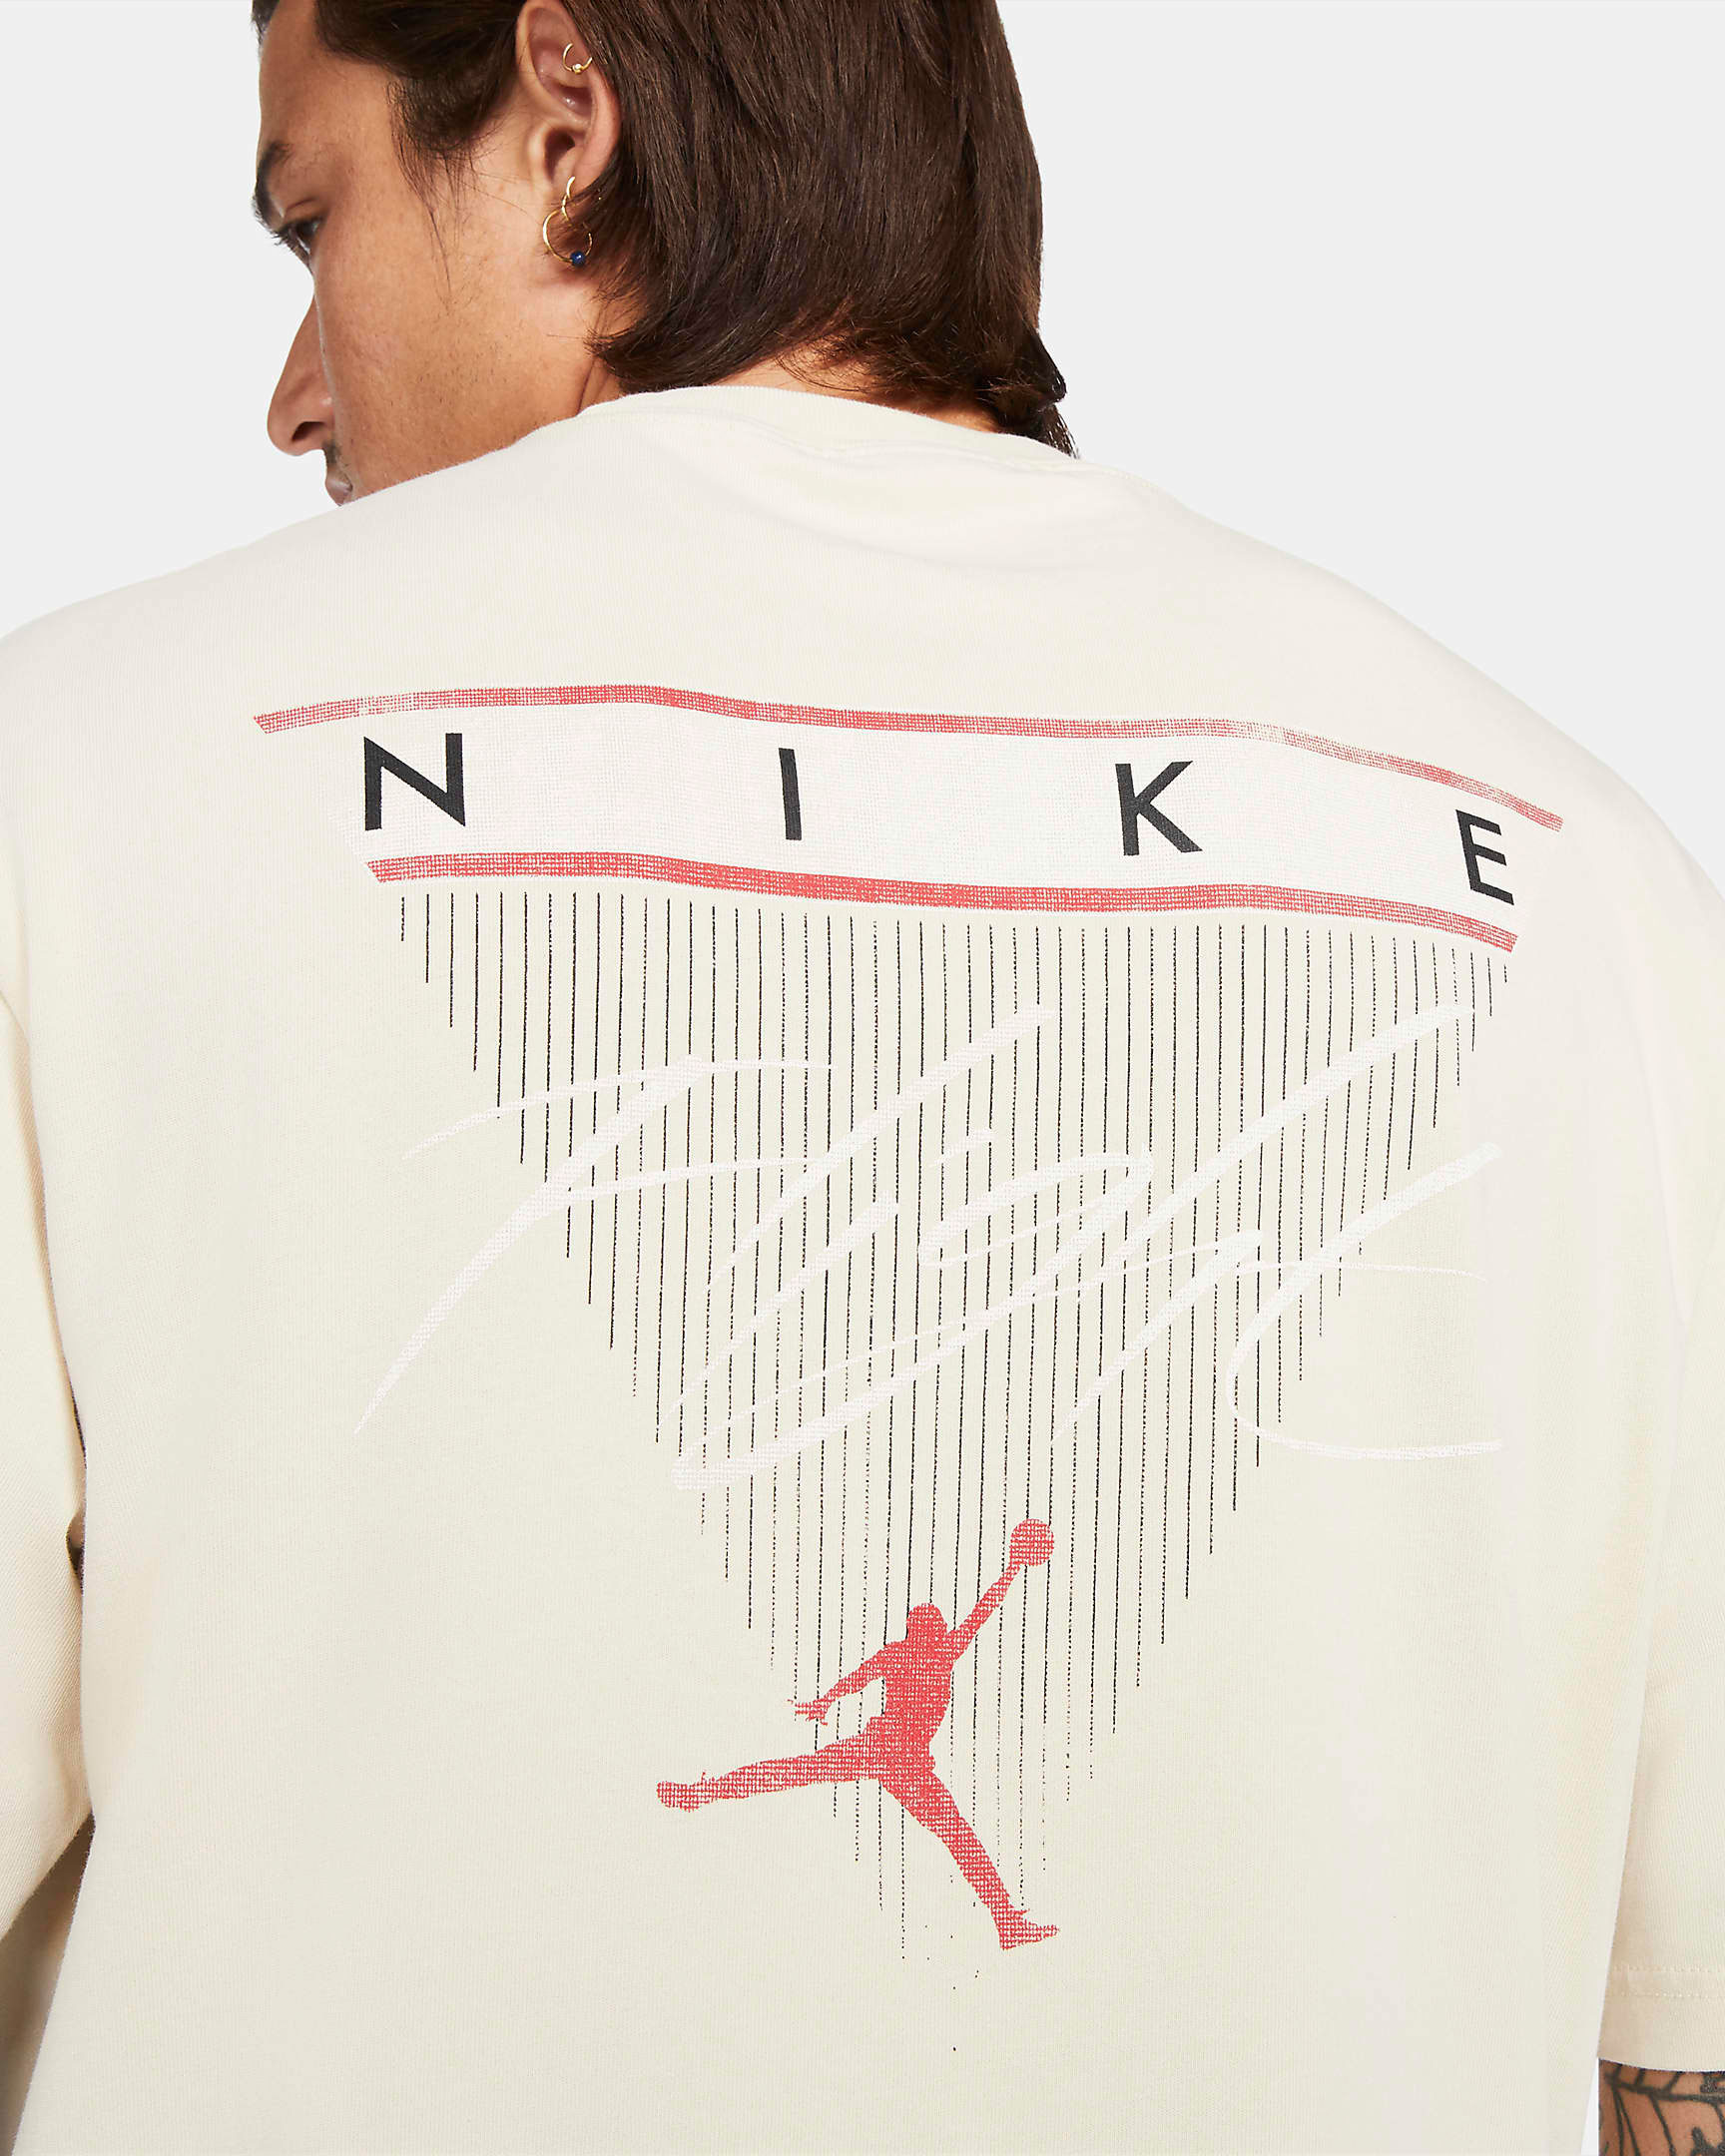 jordan-off-white-sail-shirt-4